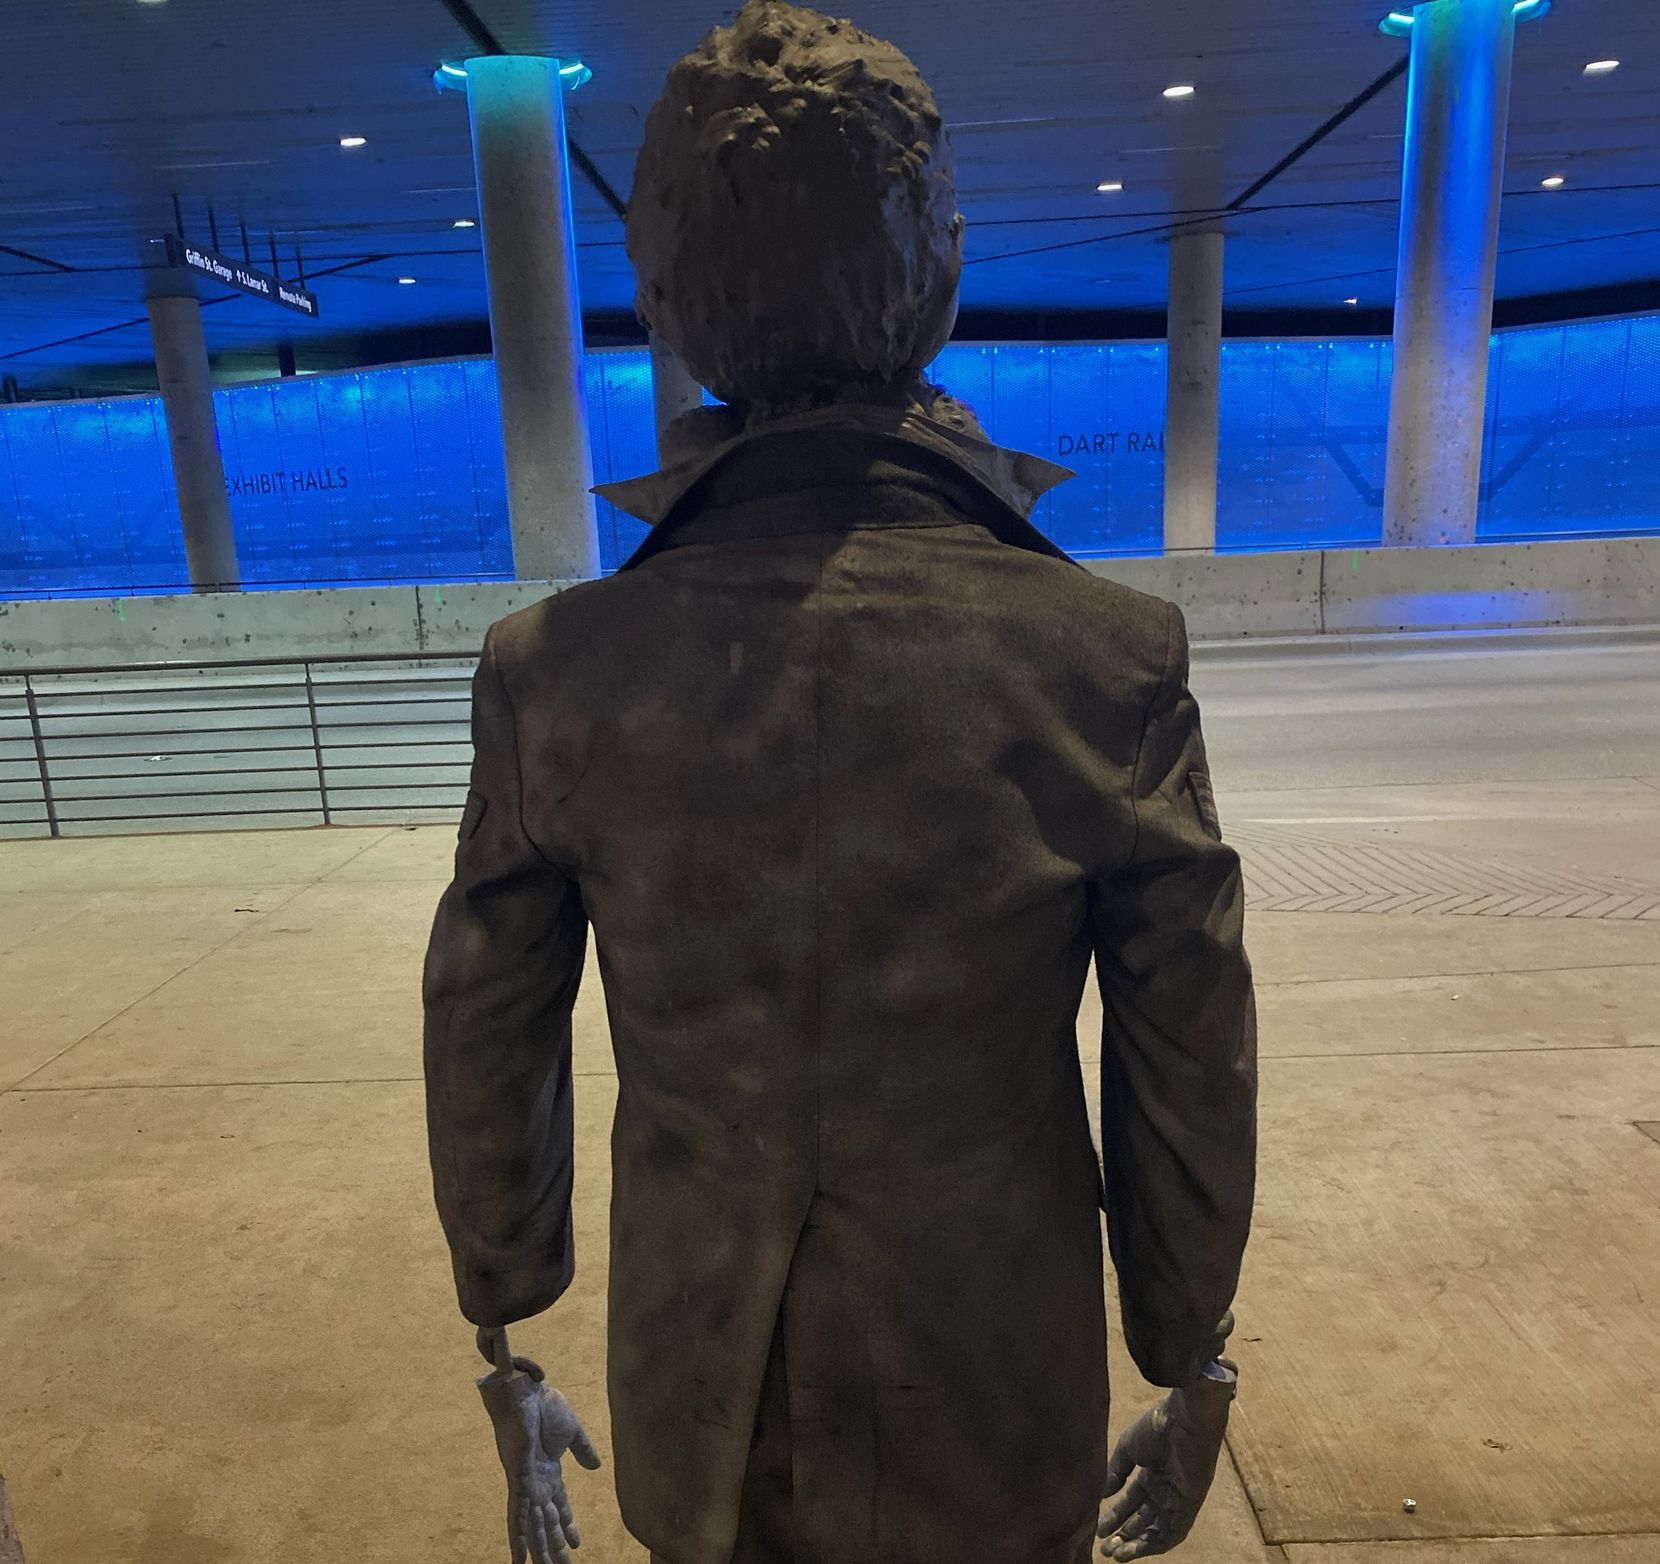 A mysterious sculpture appeared briefly in the DART station beneath the Kay Bailey Hutchison Convention Center in Dallas, before being removed by the city.